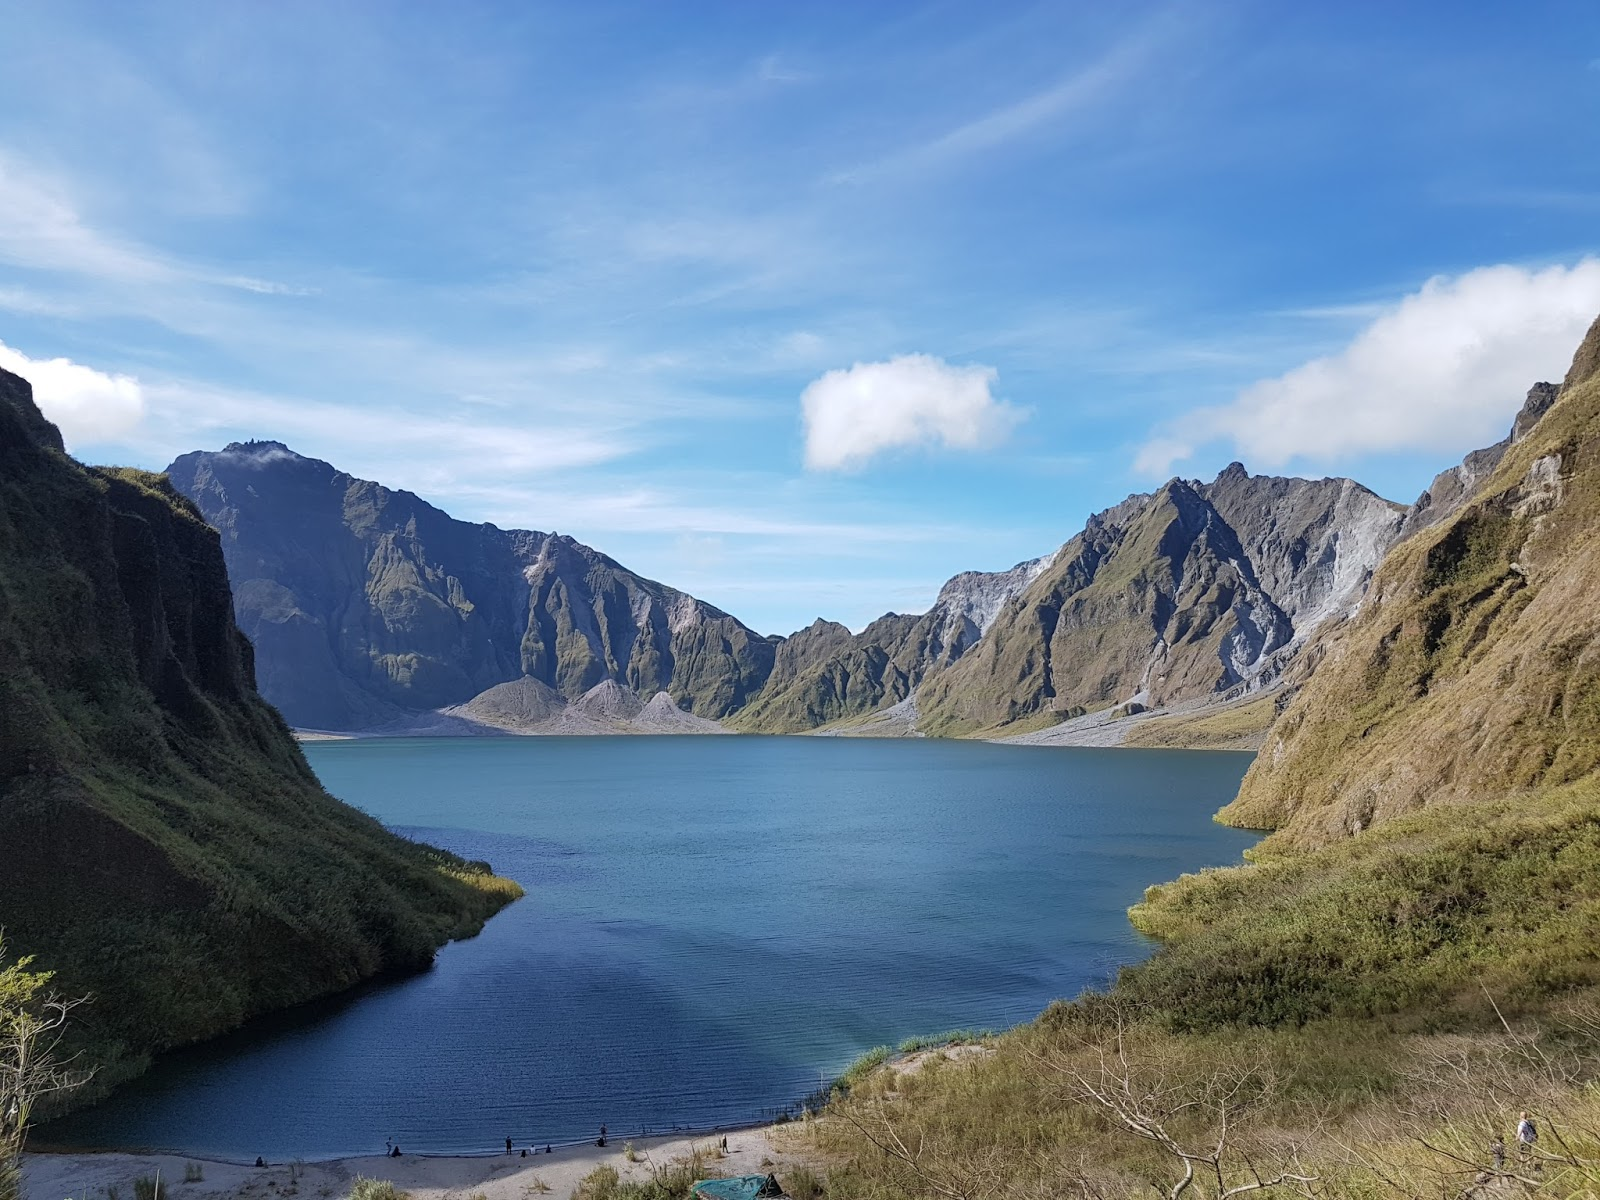 Moredantravels at Mt. Pinatubo